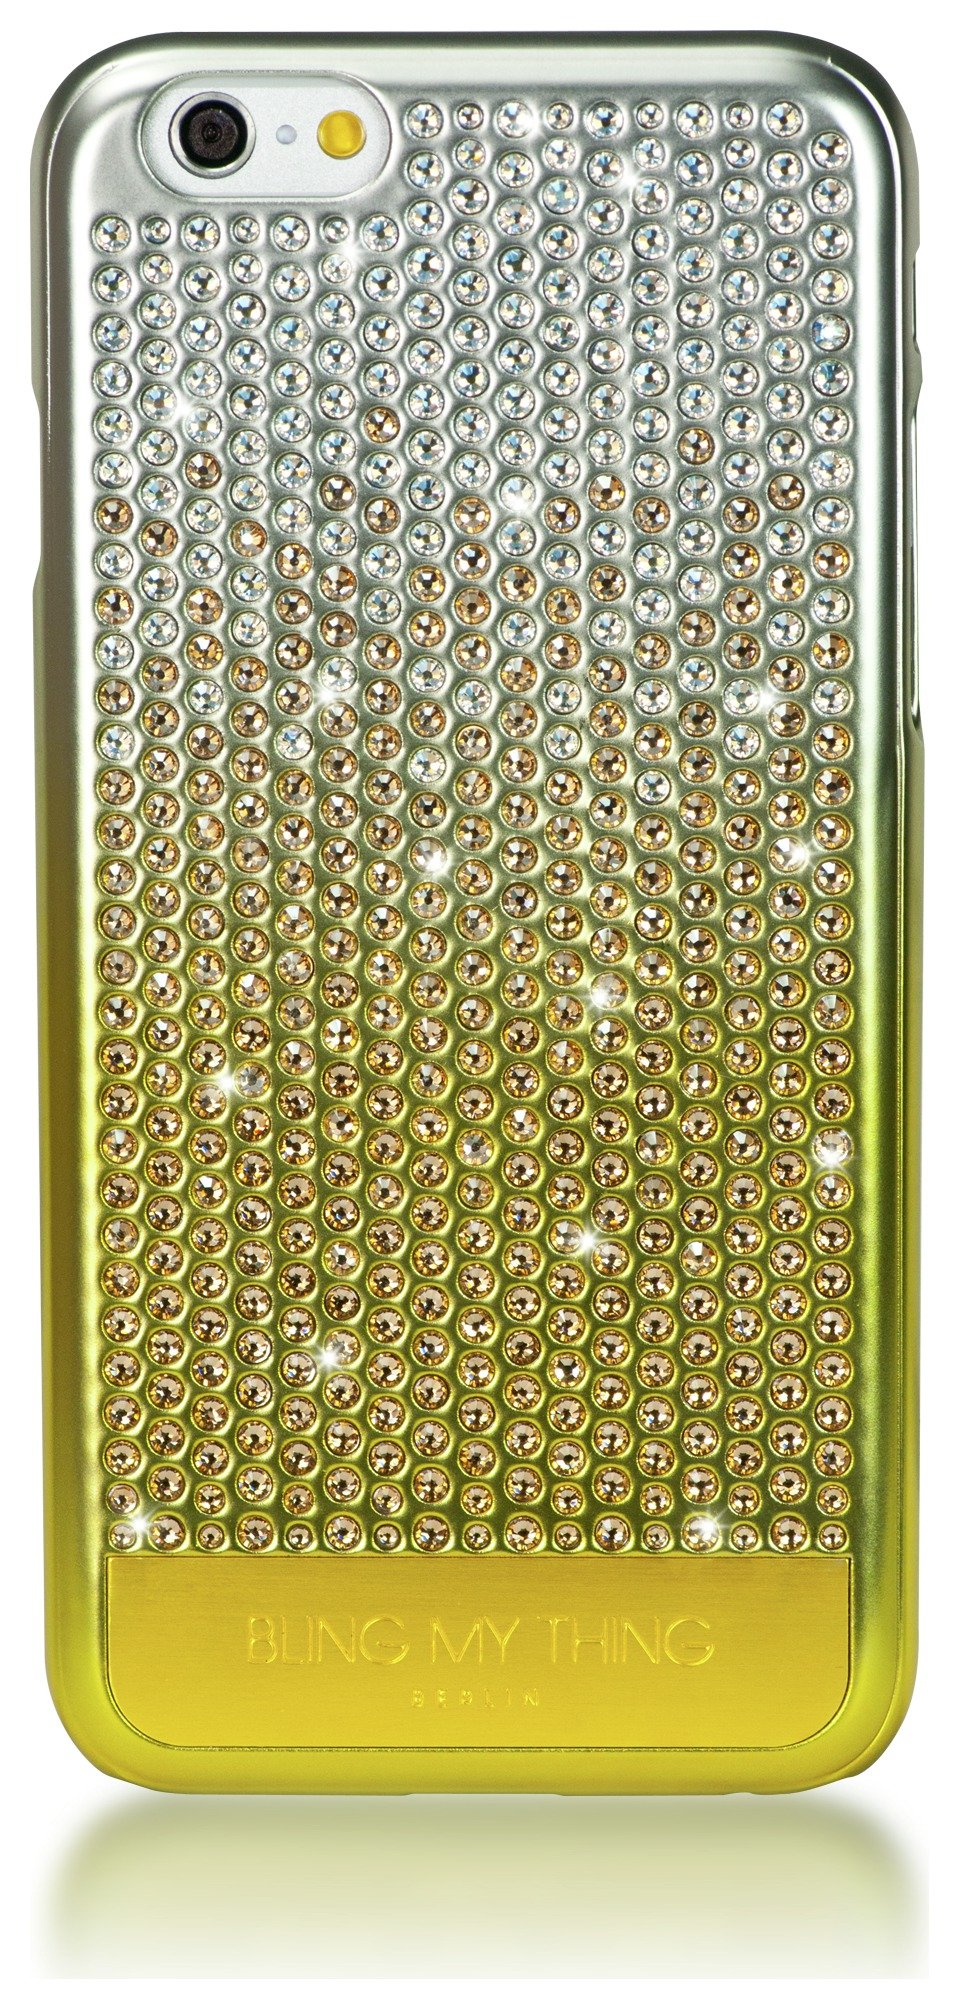 Image of Bling My Thing iPhone 6 Case - Vogue Collection.